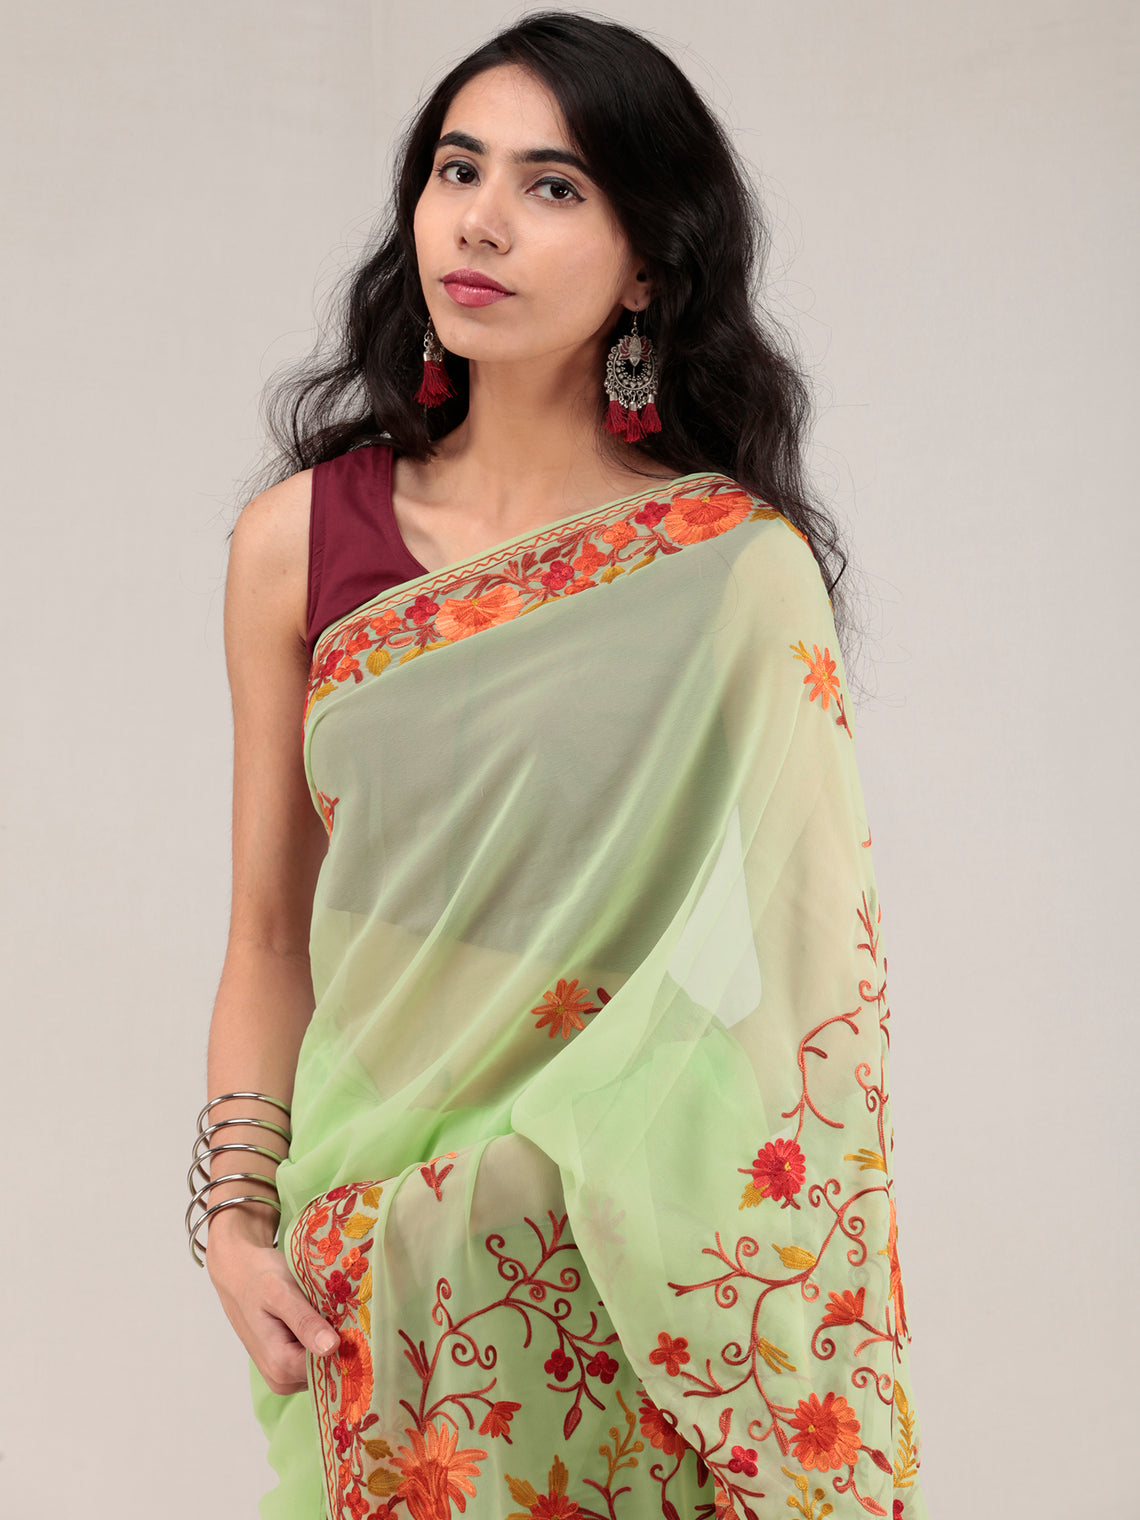 Light Green Aari Embroidered Georgette Saree From Kashmir - S031704630